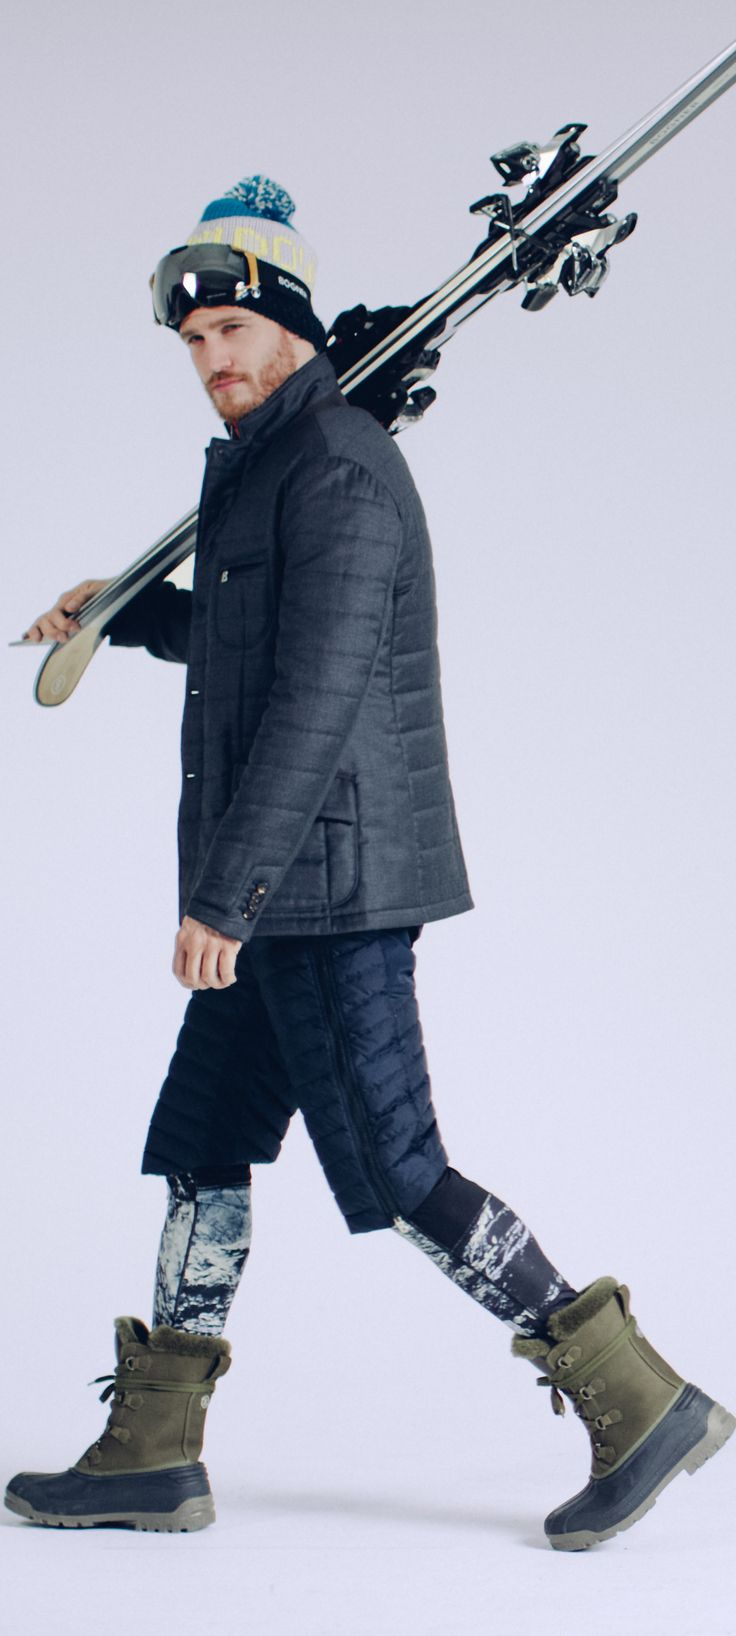 Make sure he hits the slopes this season with incredible style and swagger.